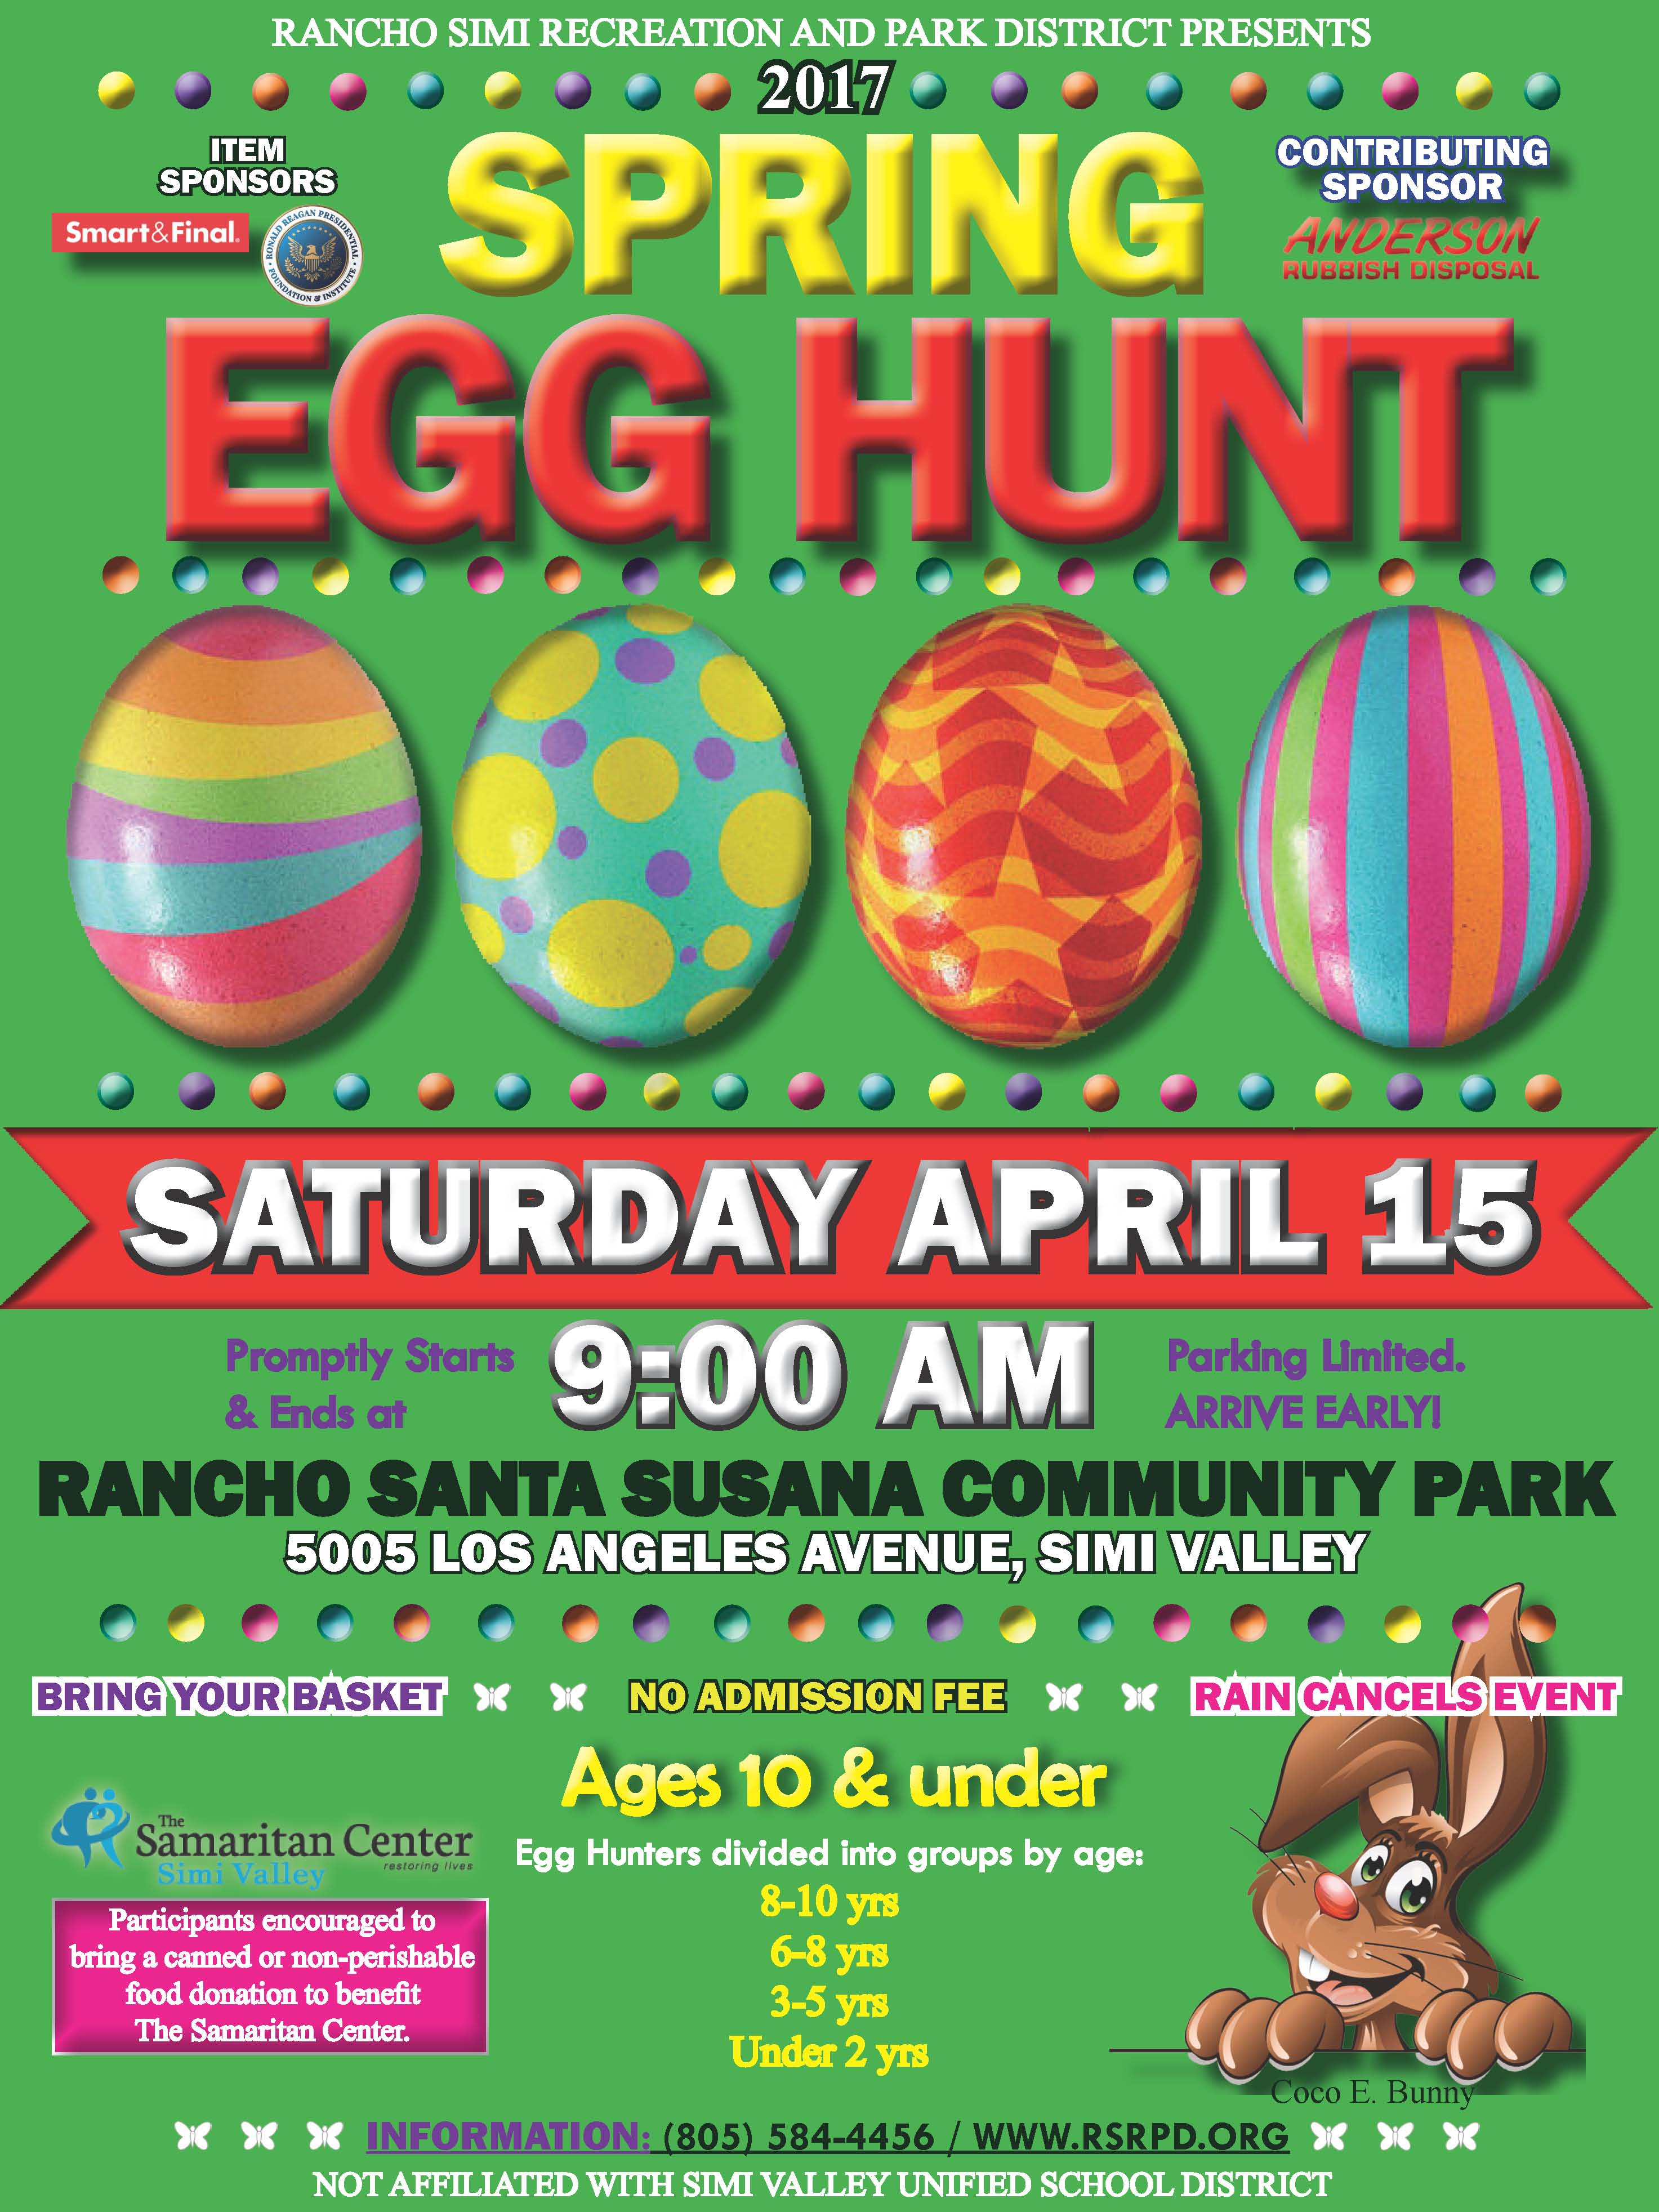 Egg Hunt Flyer 2017 wSpons